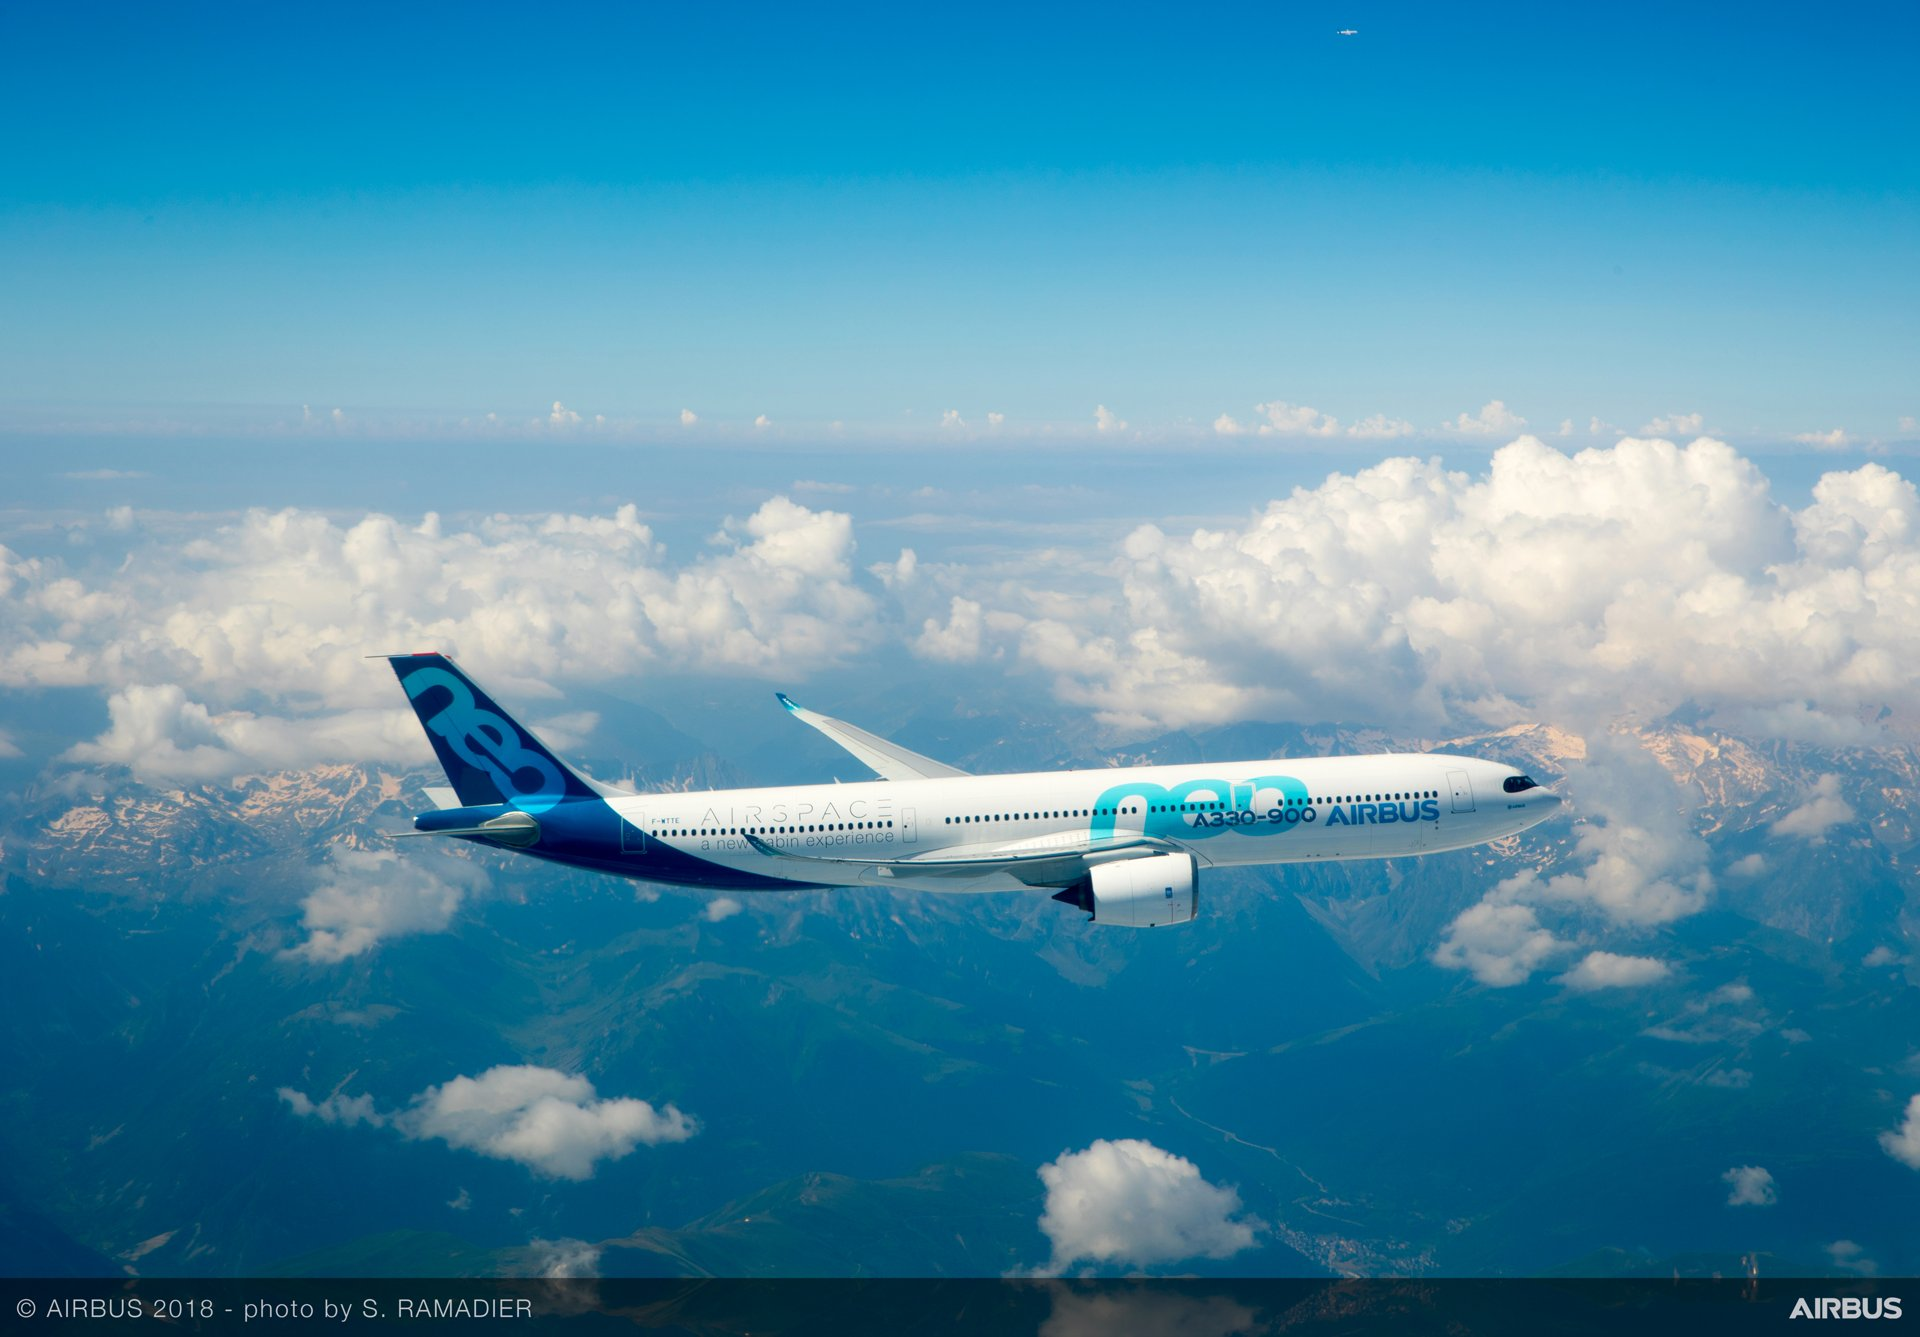 """The A330-900 received its Type Certification following a flight campaign that involved around 1,400 flight test hours performed in less than one year, which was followed by approval for ETOPS (Extended-range Twin engine aircraft Operations) """"beyond 180 minutes"""" diversion time"""